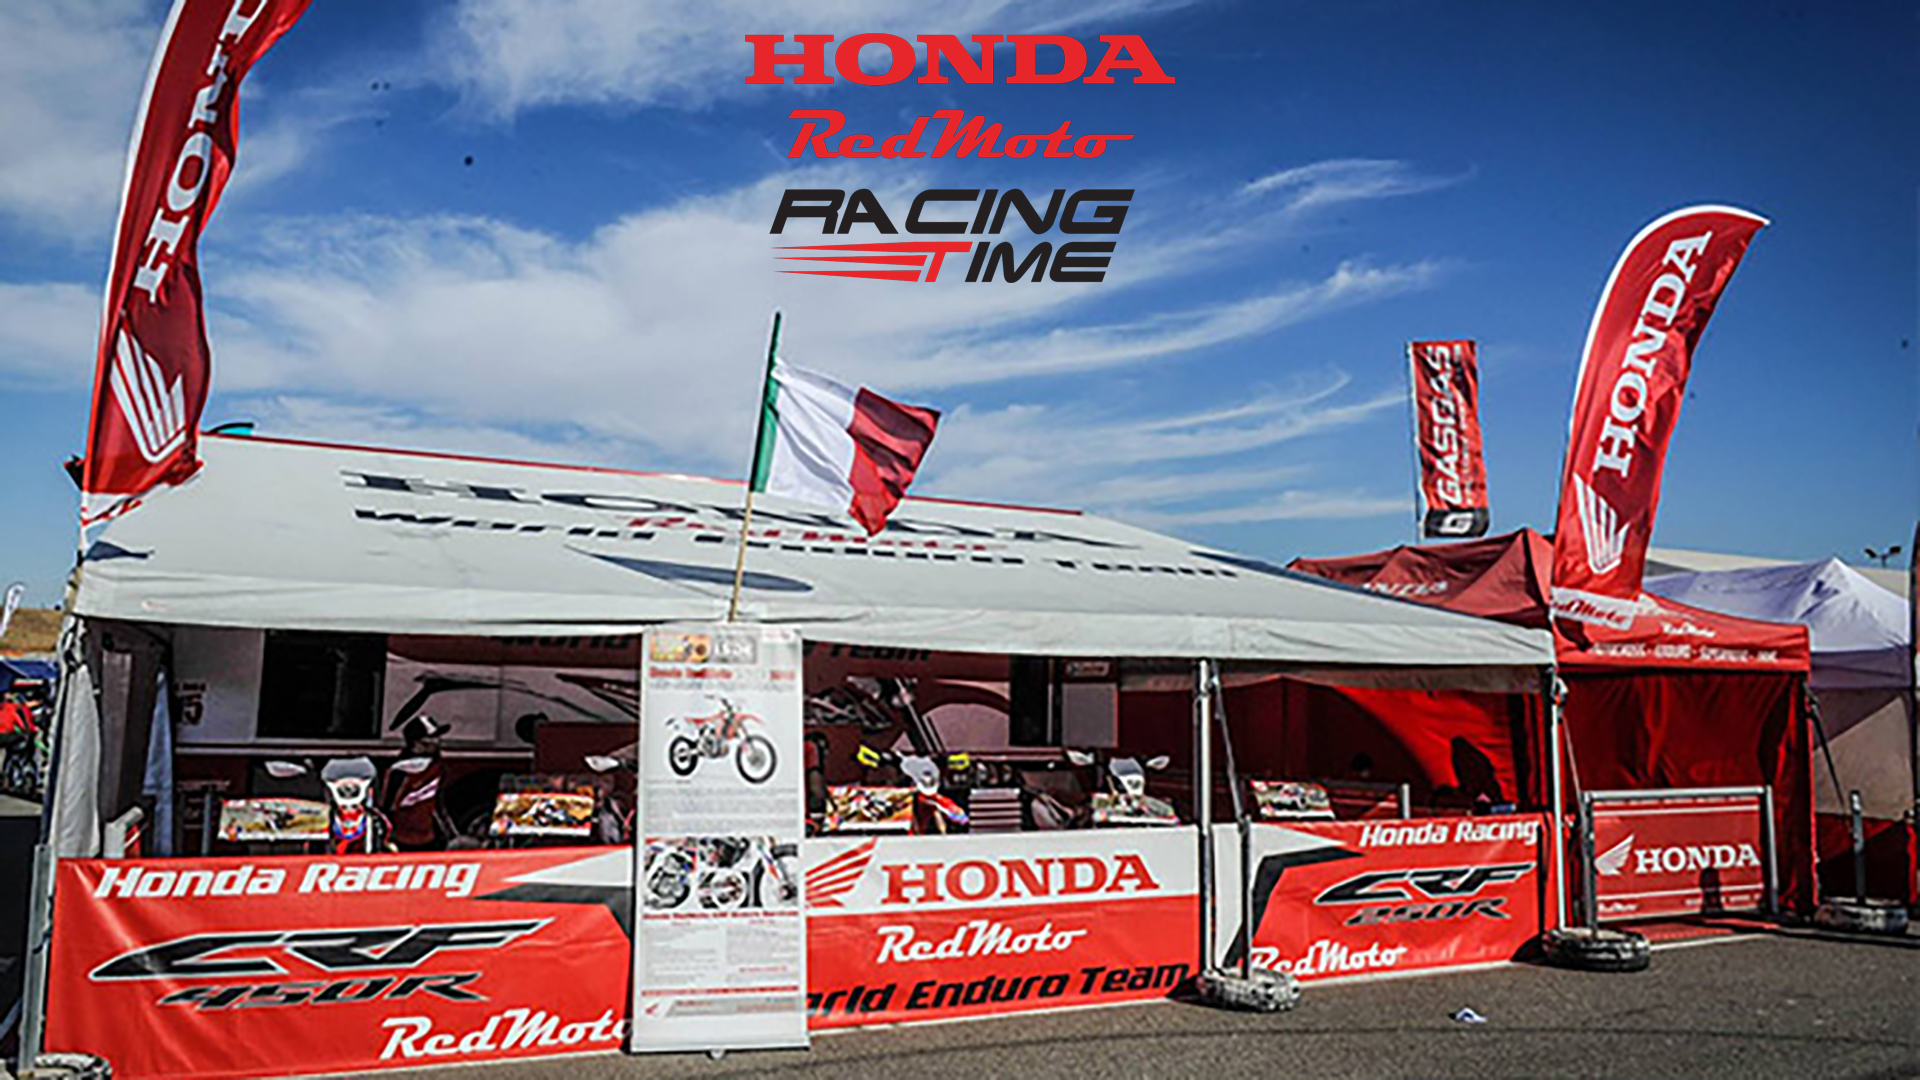 © Racing Time Honda RedMoto Team